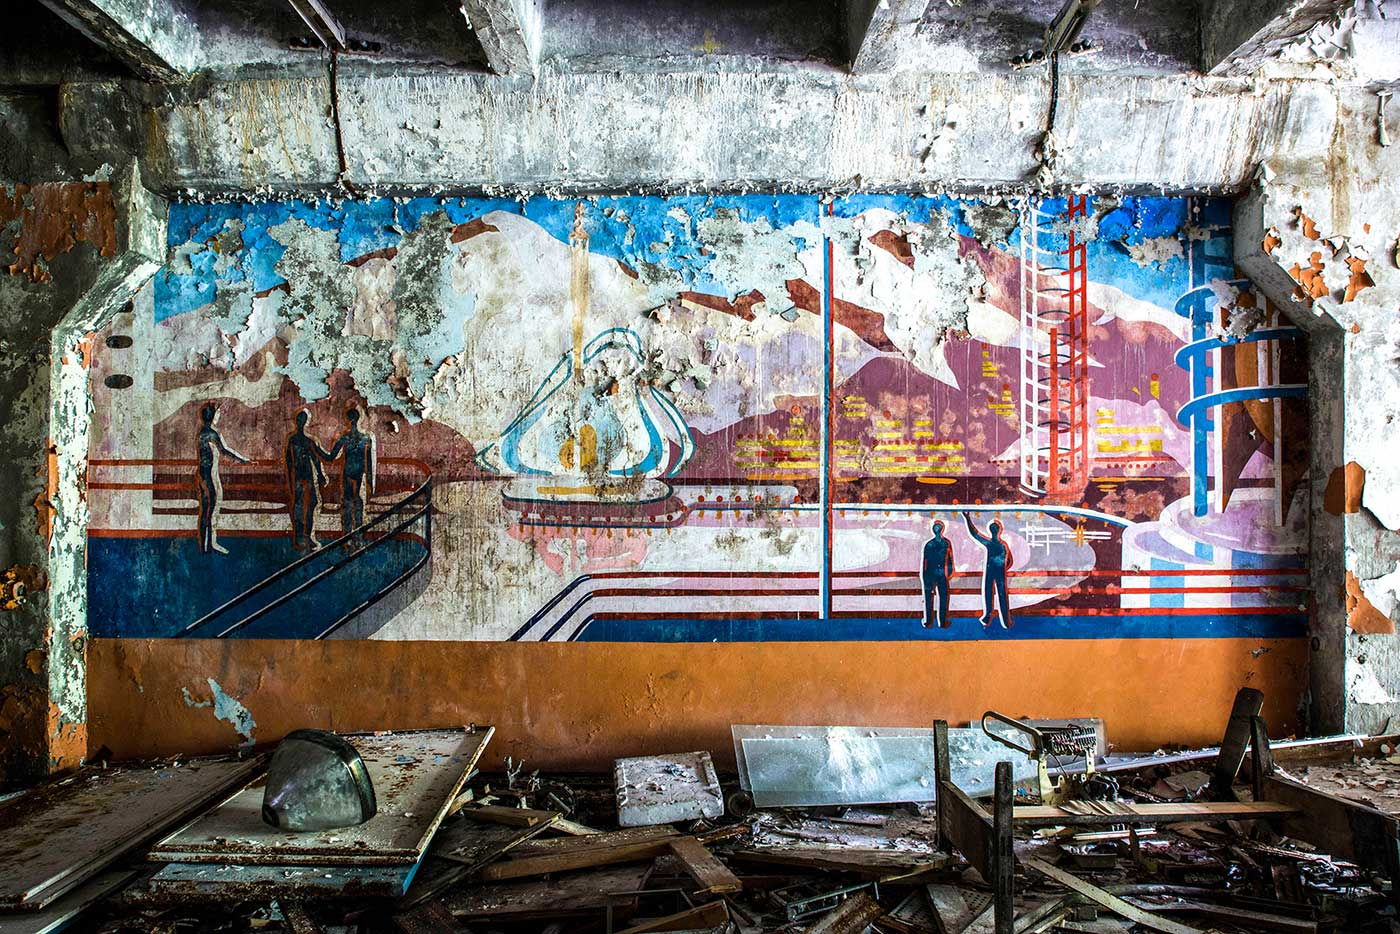 Another wall mural inside the control block of the Duga-1 radar station. This one seems to depict ordinary citizens, enjoying a peaceful life in a futuristic Soviet utopia.